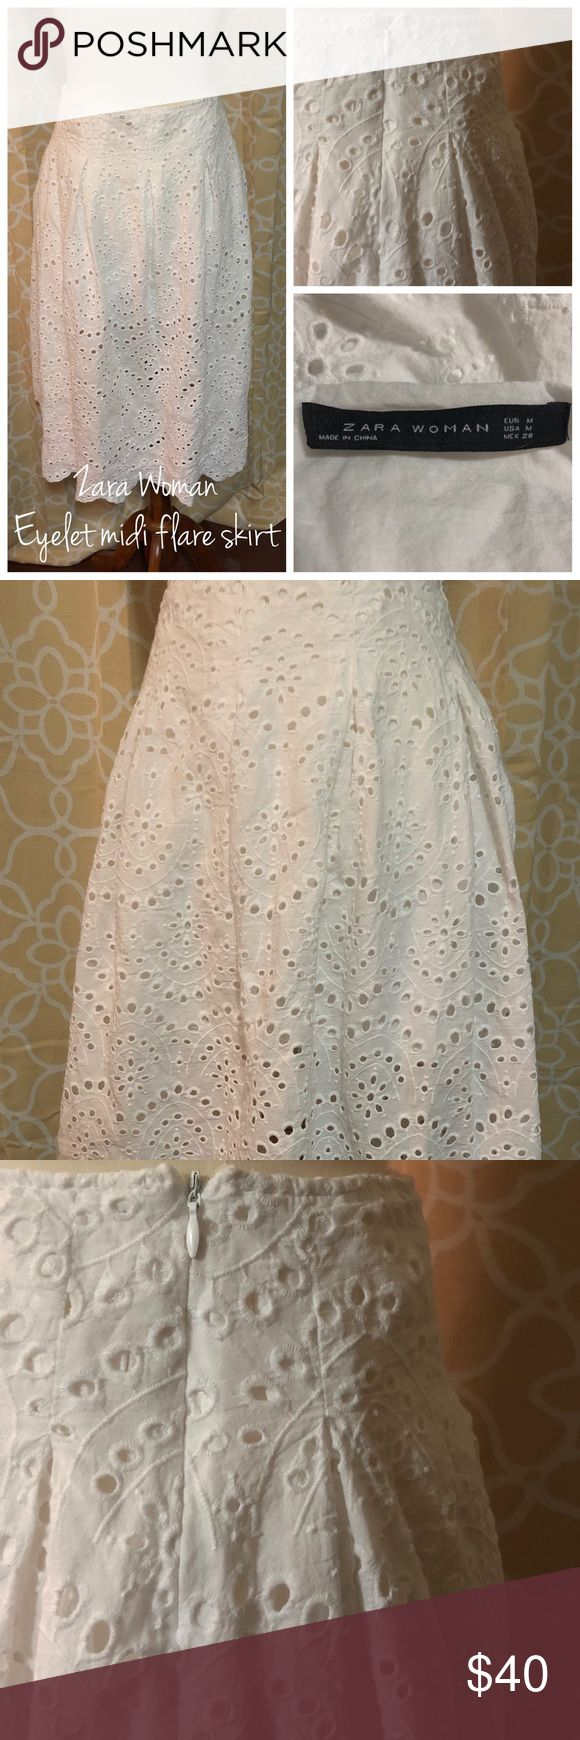 Zara Woman Eyelet Midi Flare Skirt Pretty prairie eyelet midi shirt from Zara would style well with a denim jacket and tank in a pop of colour. Add a market bag, sunnies & sandals and you are set for a fun Saturday afternoon. EUC. Size M. Zara Skirts Midi